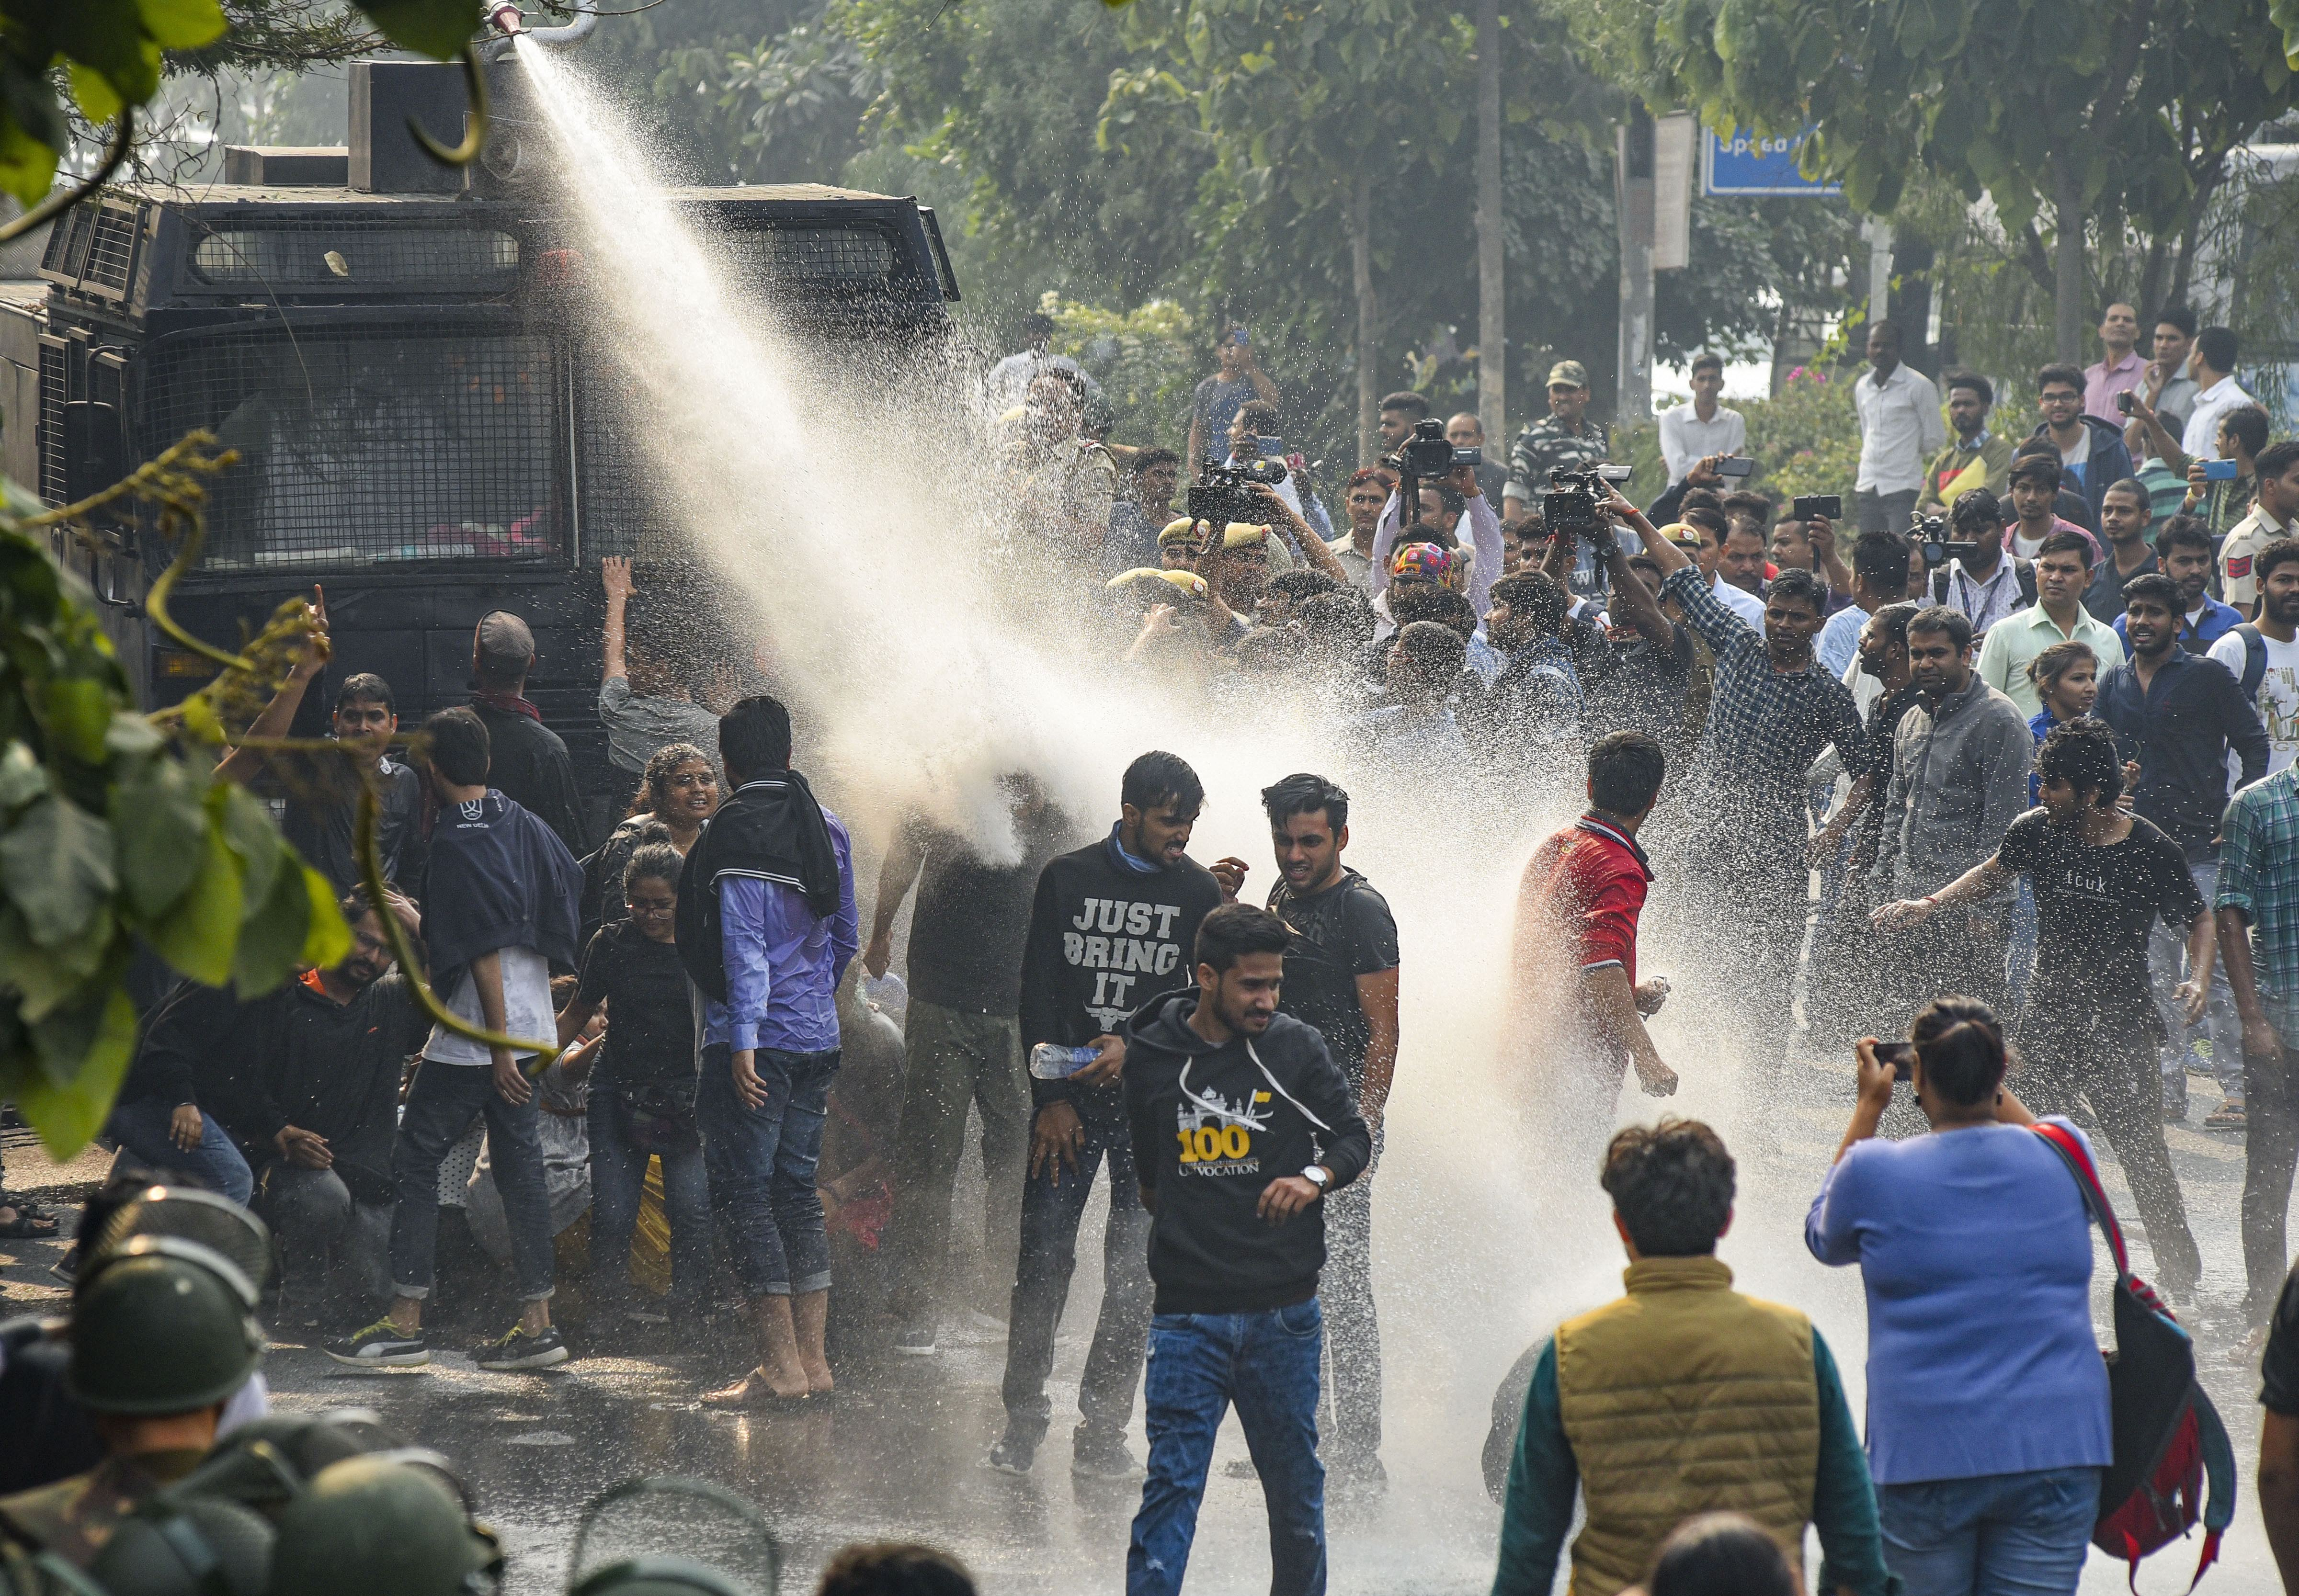 Police personnel use water cannon to disperse students of Jawaharlal Nehru University protesting against the administration's anti-students policy, in New Delhi, Monday, November 11, 2019.